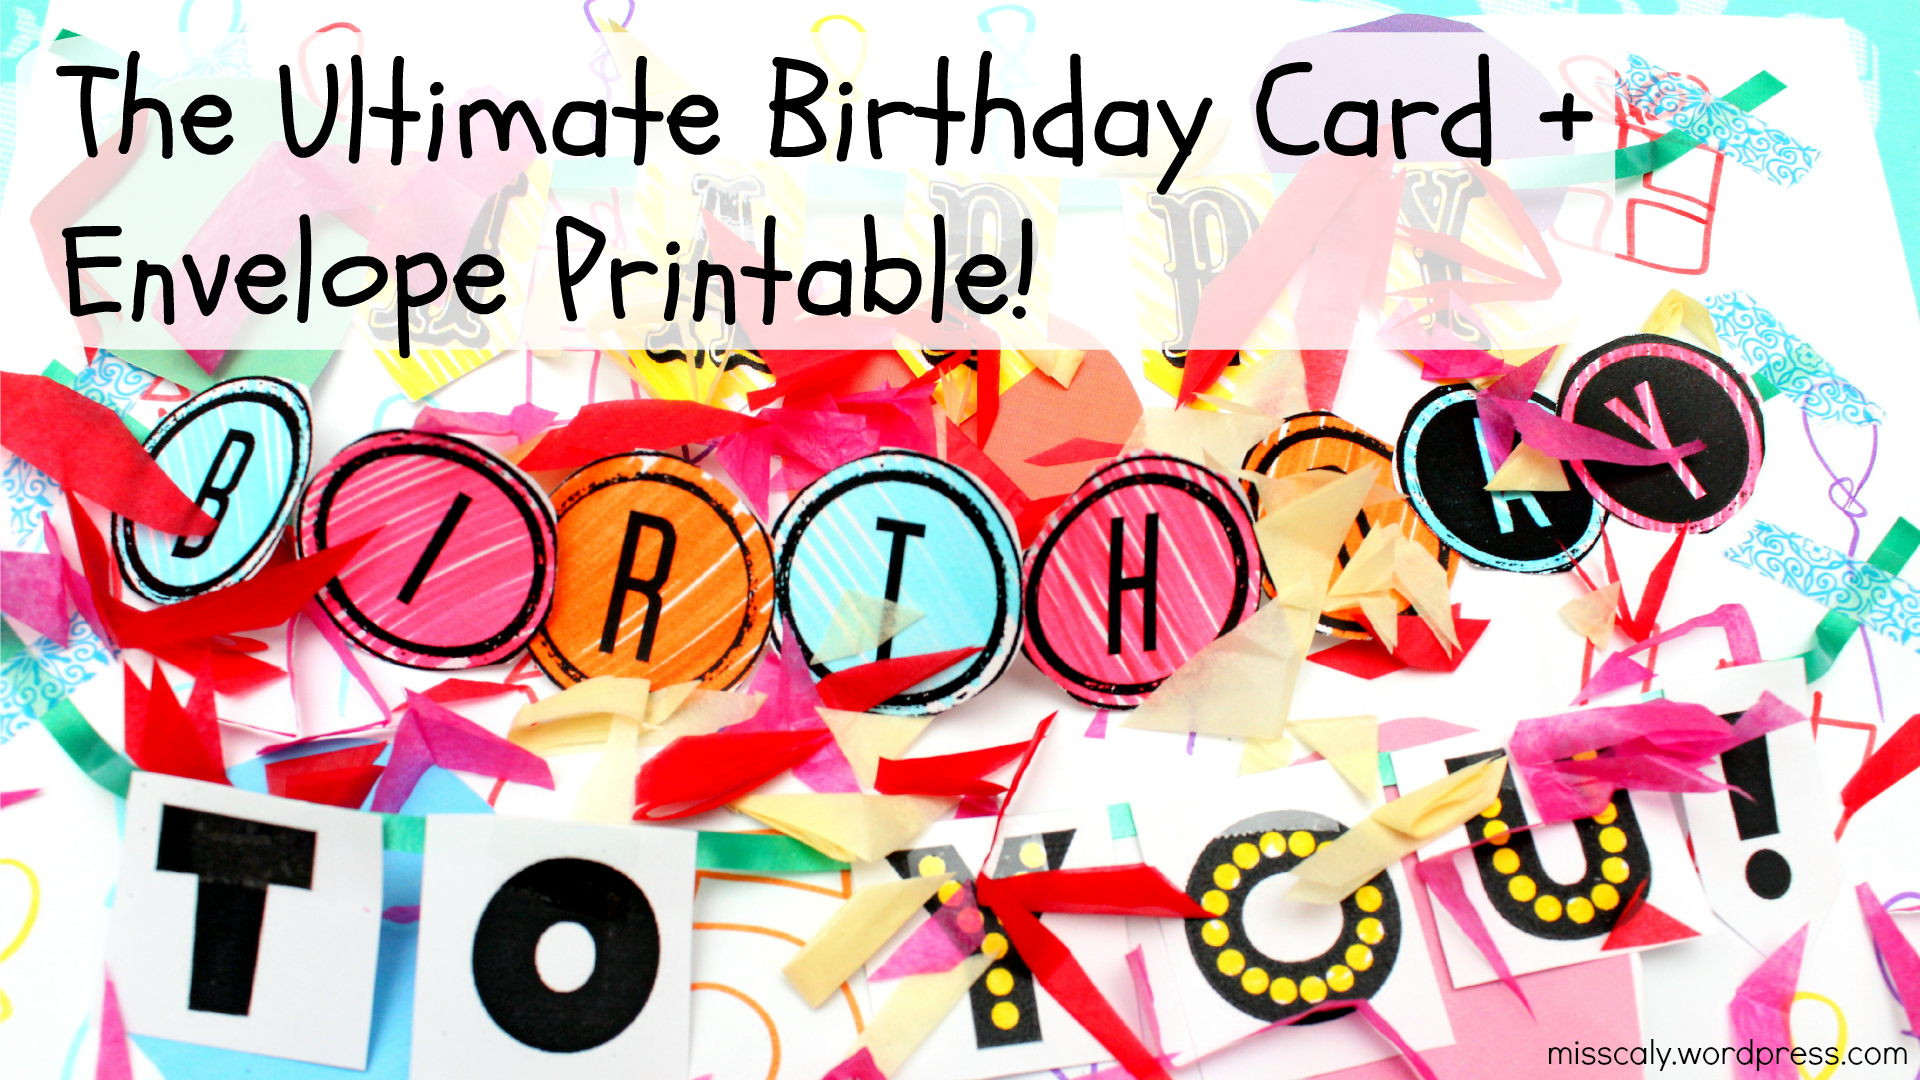 How to Make the Ultimate Birthday Card – FREE PRINTABLES and Easy